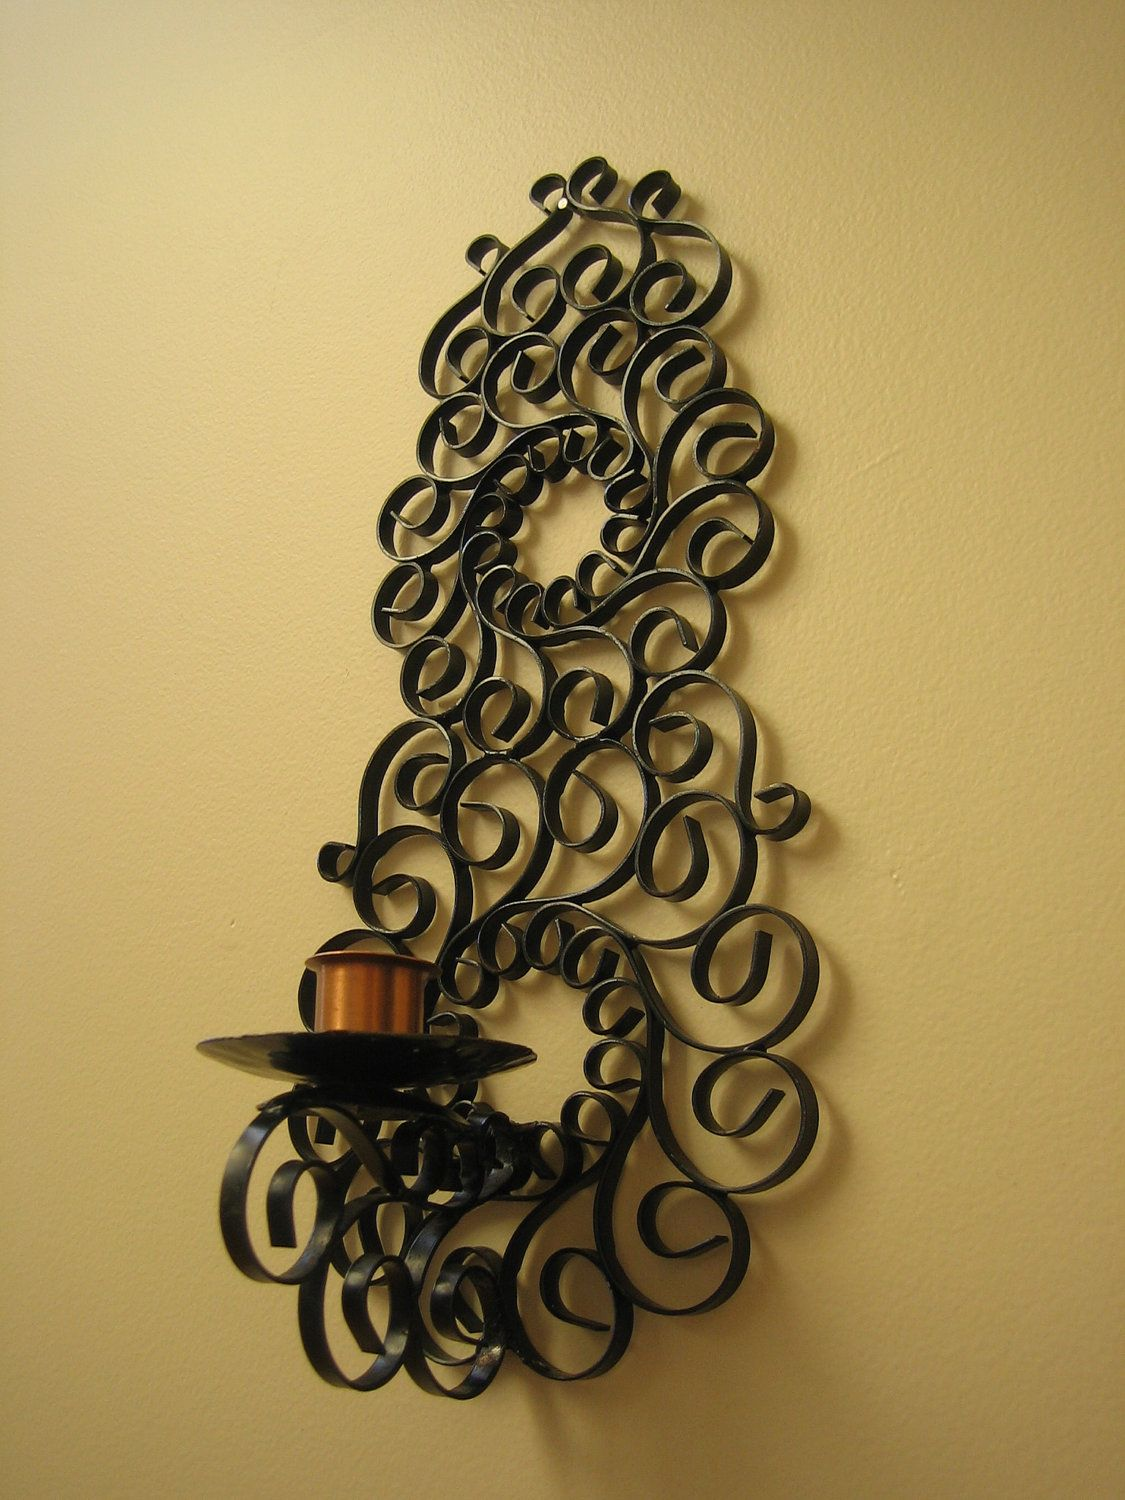 Magnificent Wrought Iron Wall Decor Candle Holders Sketch - The Wall ...